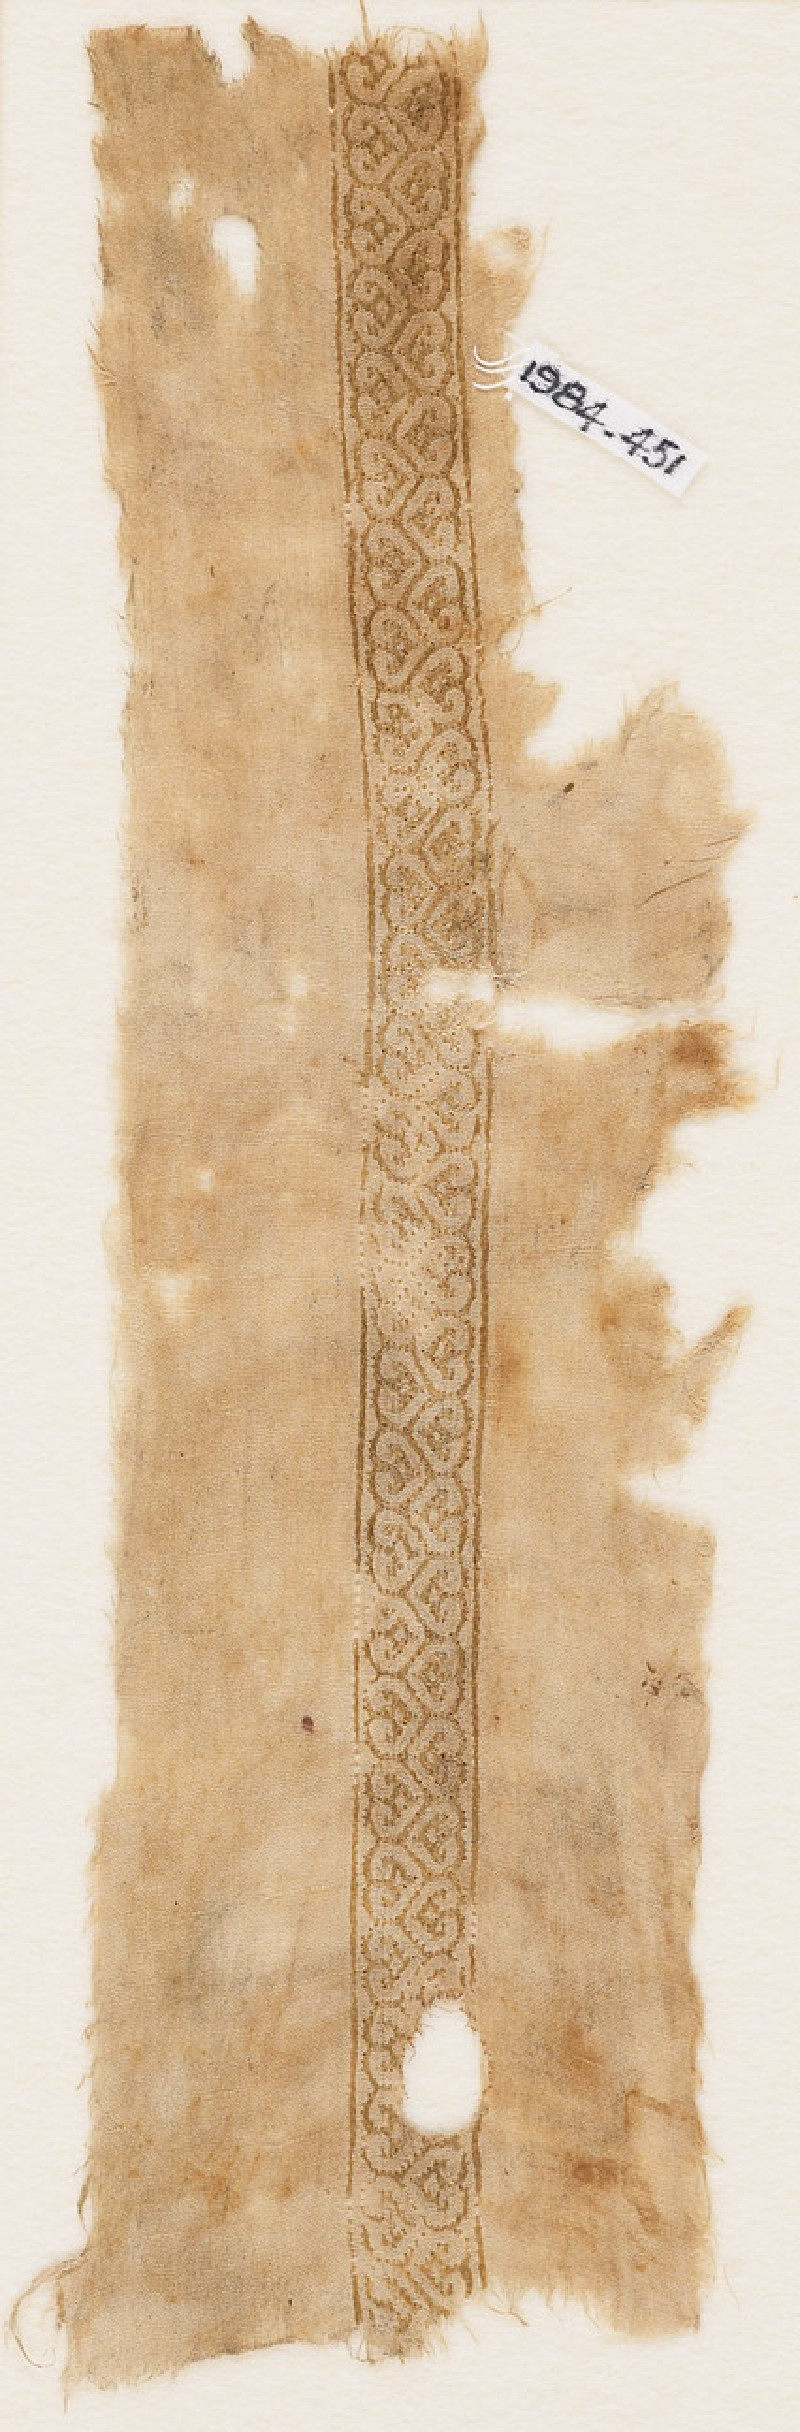 Textile fragment with band of linked hearts